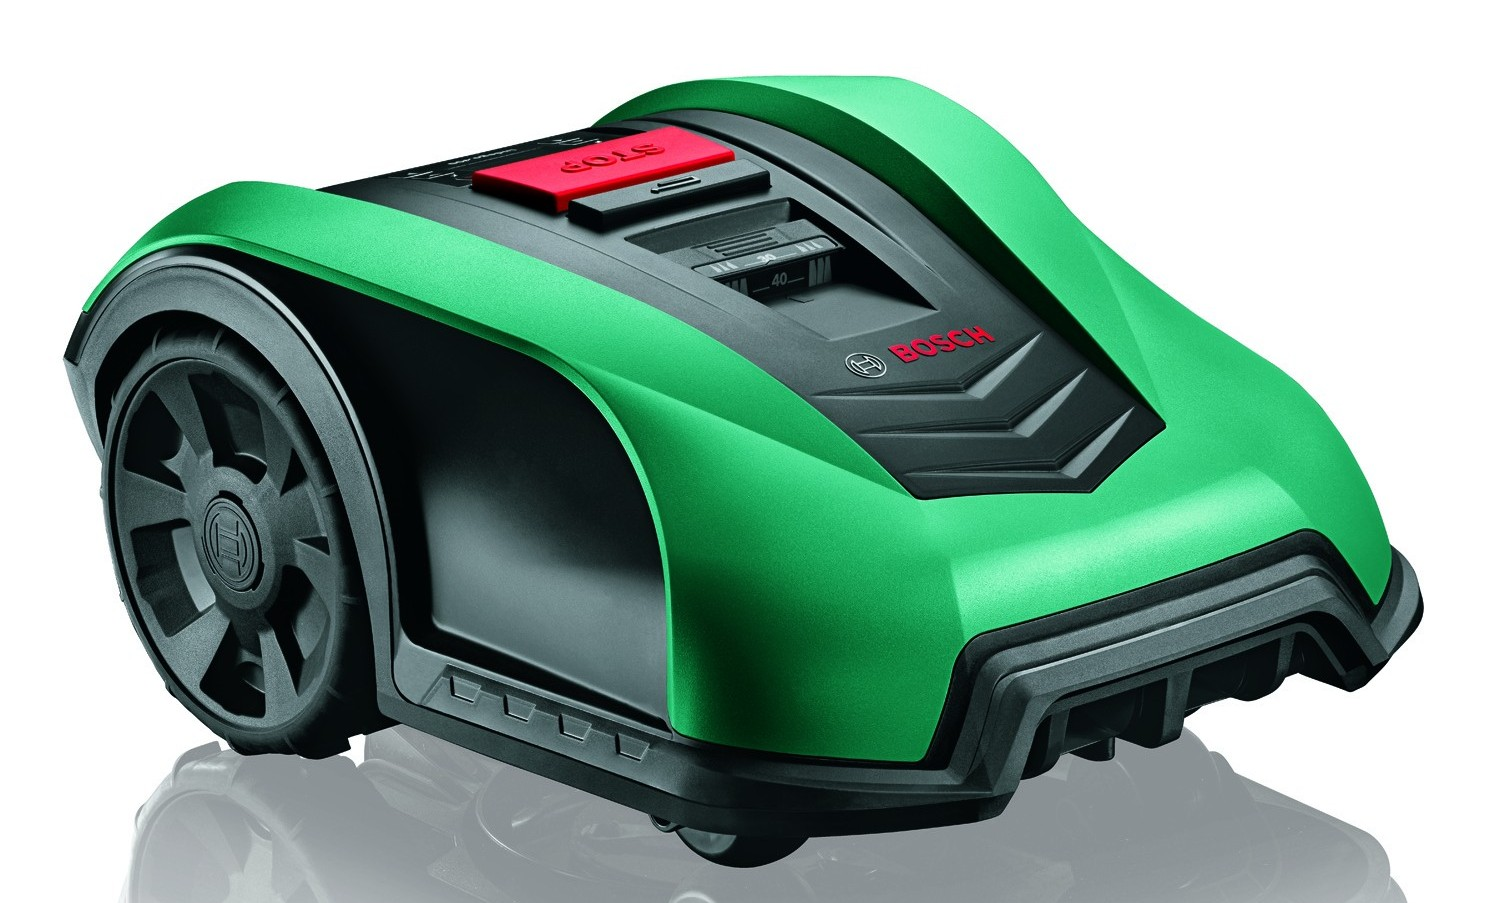 Latest Robotic Lawn Mower Technology from Bosch